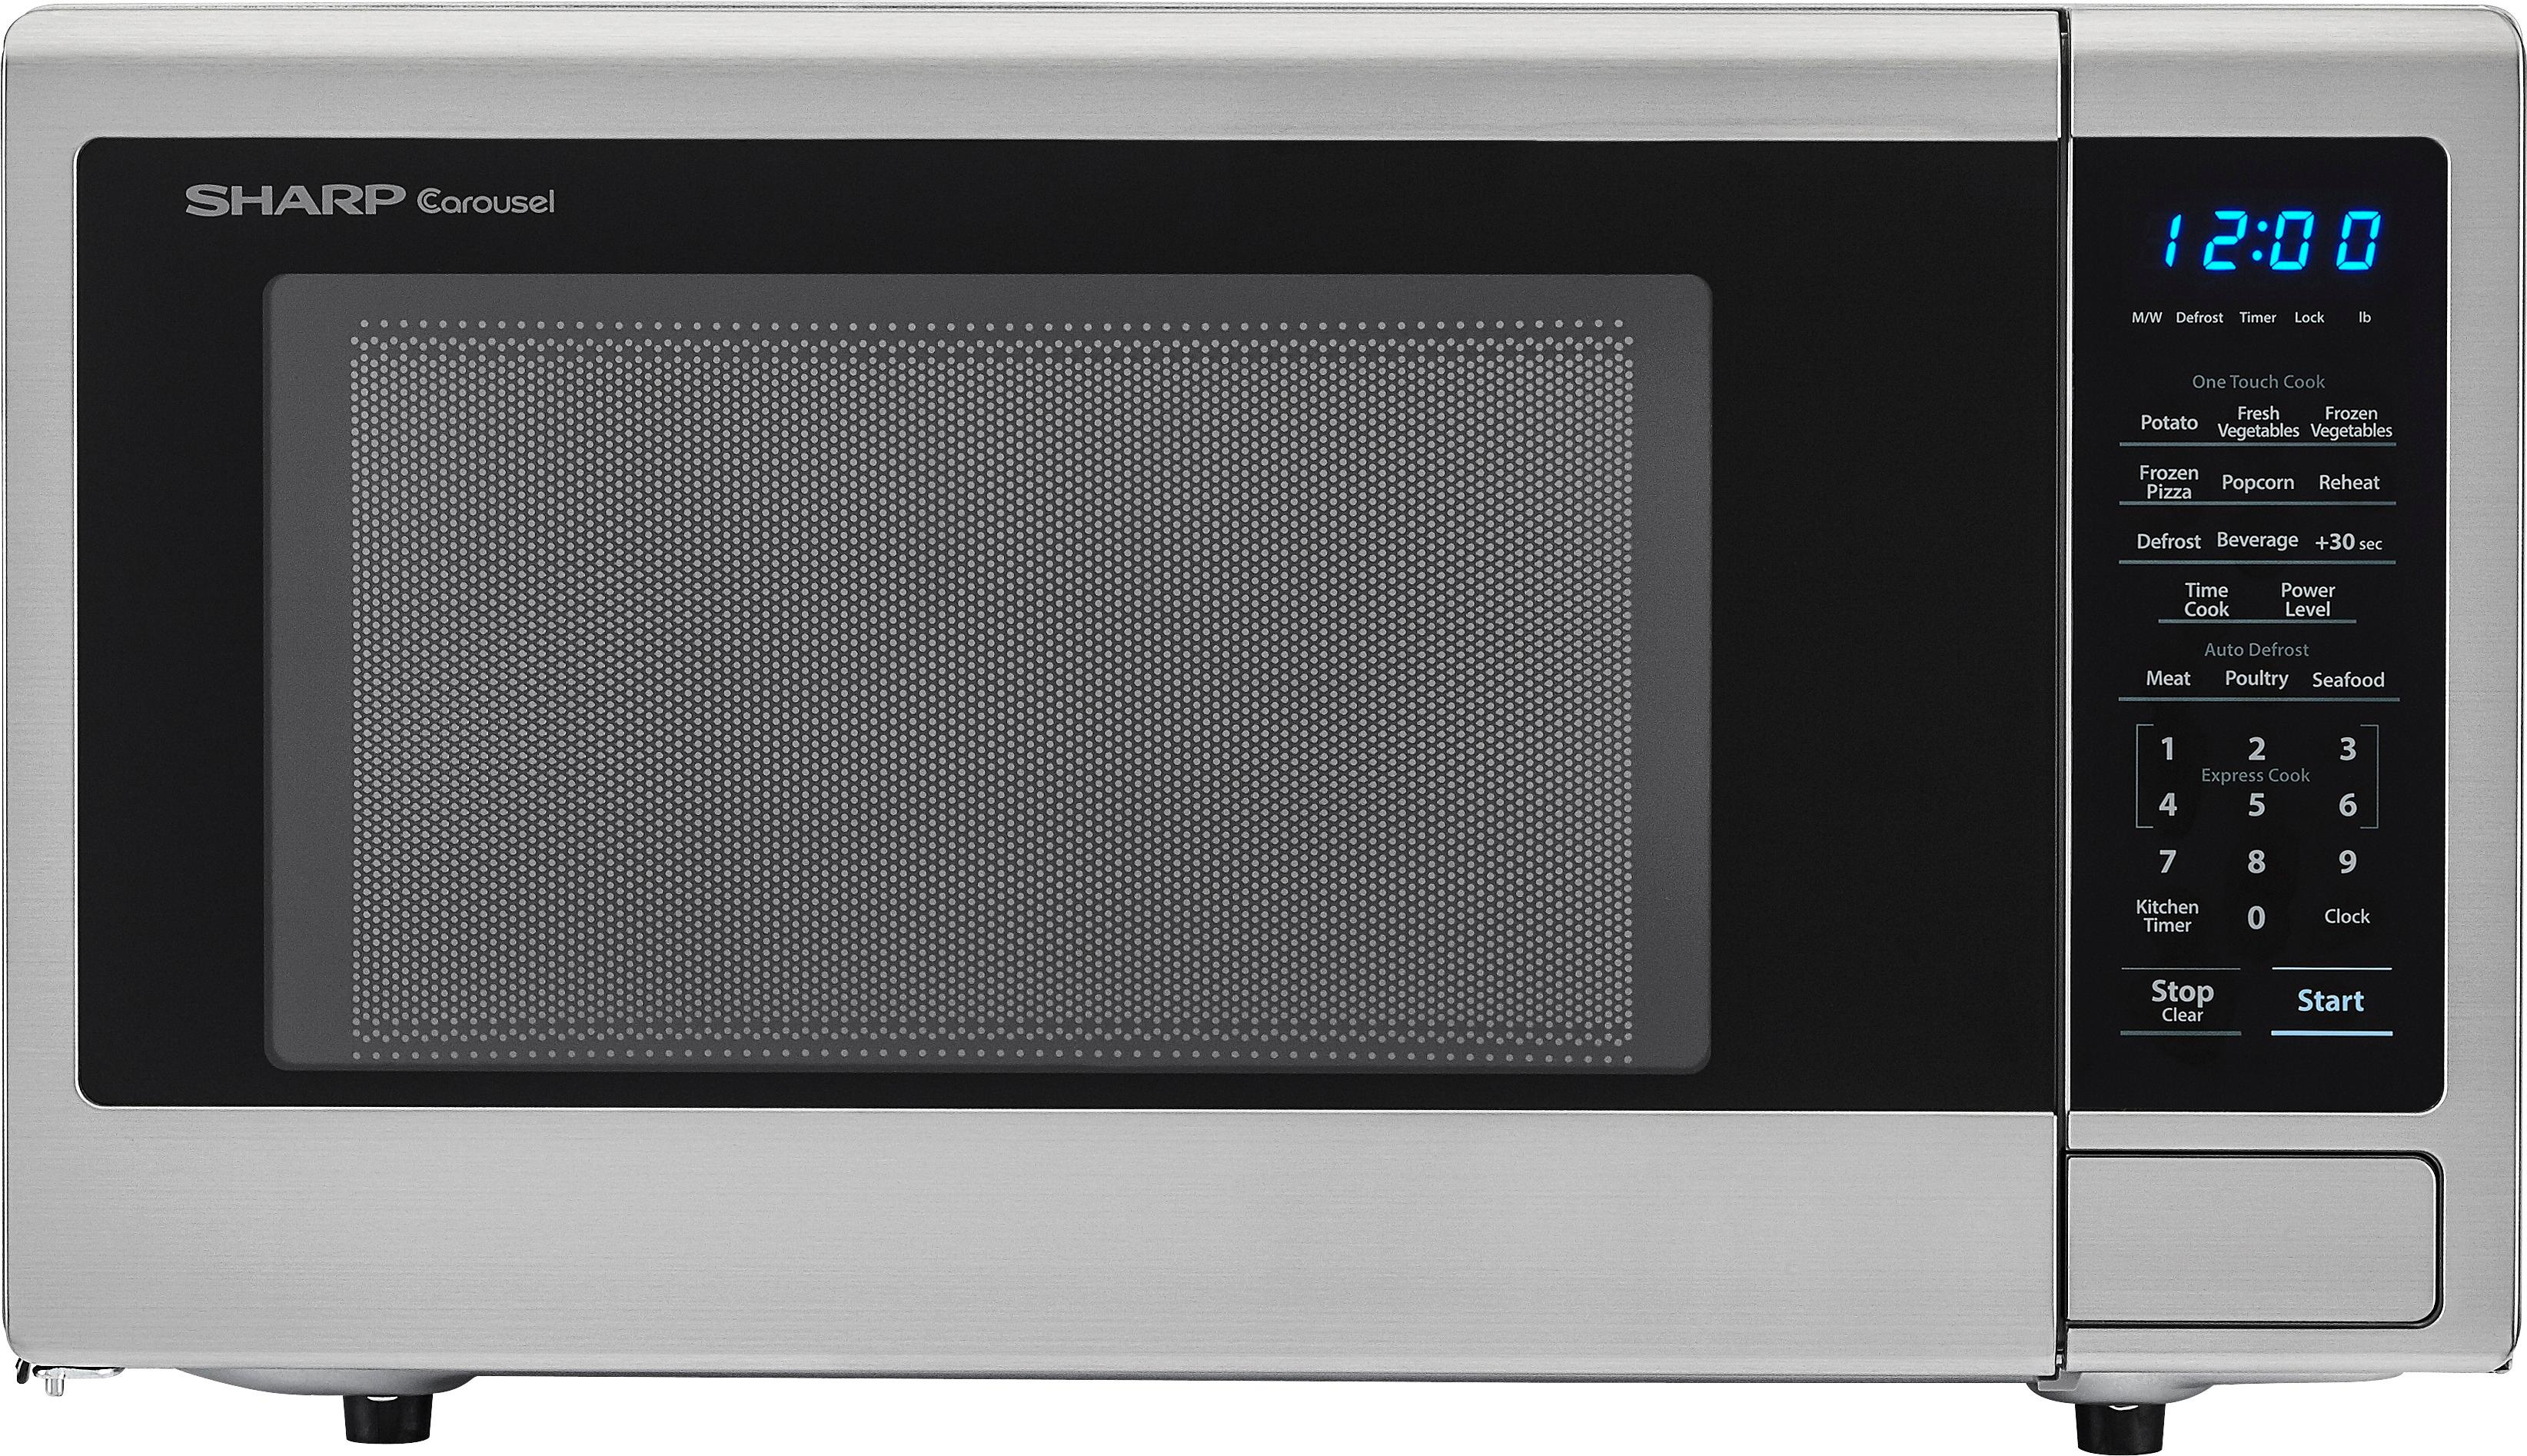 sharp carousel 1 1 cu ft mid size microwave stainless steel